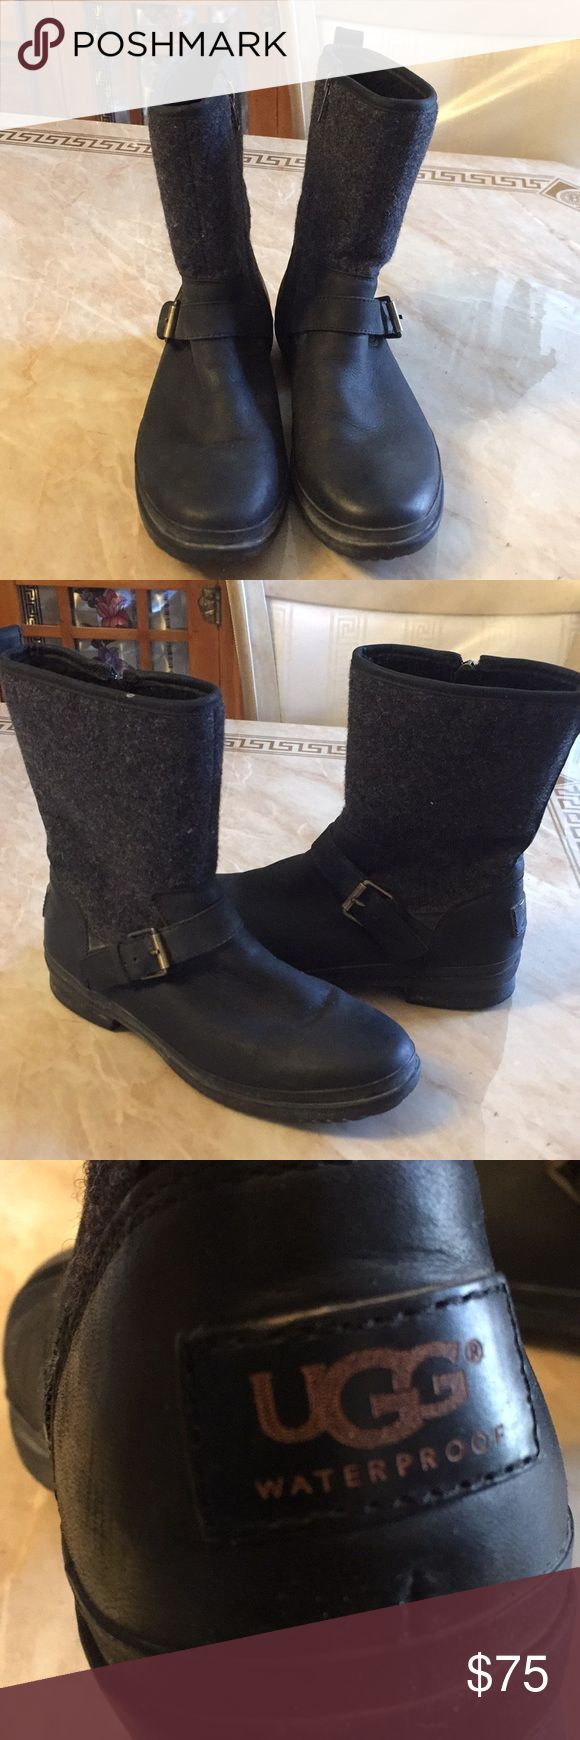 UGG Waterproof pre loved gently used practically new used only 4 times no box some very light spots not very visible were purchased at NORDSTROM Reasonable offers Welcome UGG Shoes Winter & Rain Boots